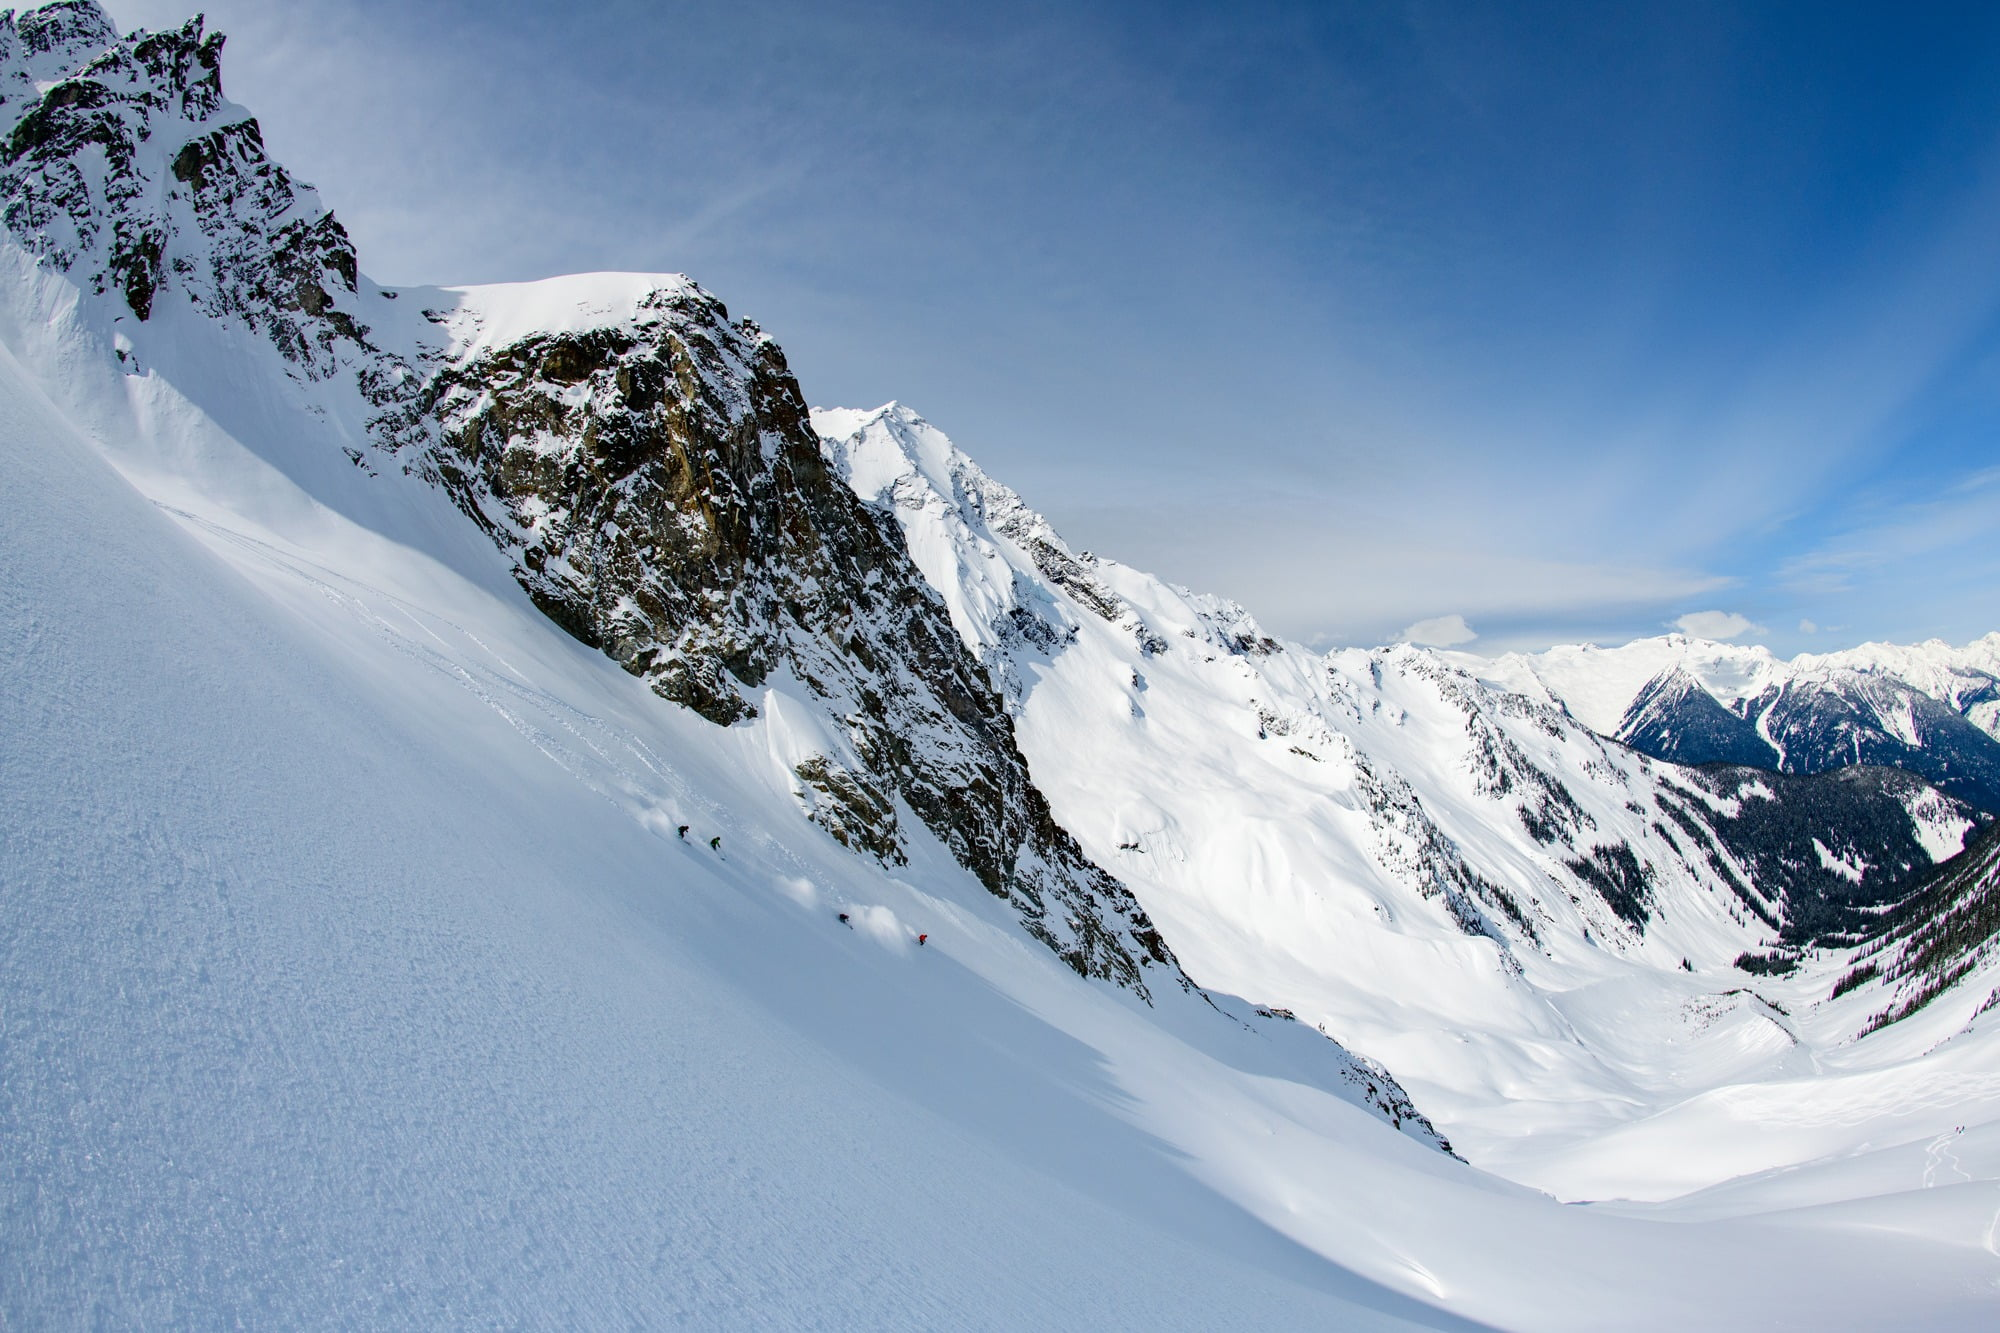 A Groups Of 4 People Heli-skiing In Revelstoke, BC. Huge Mountains In The Backdrop.